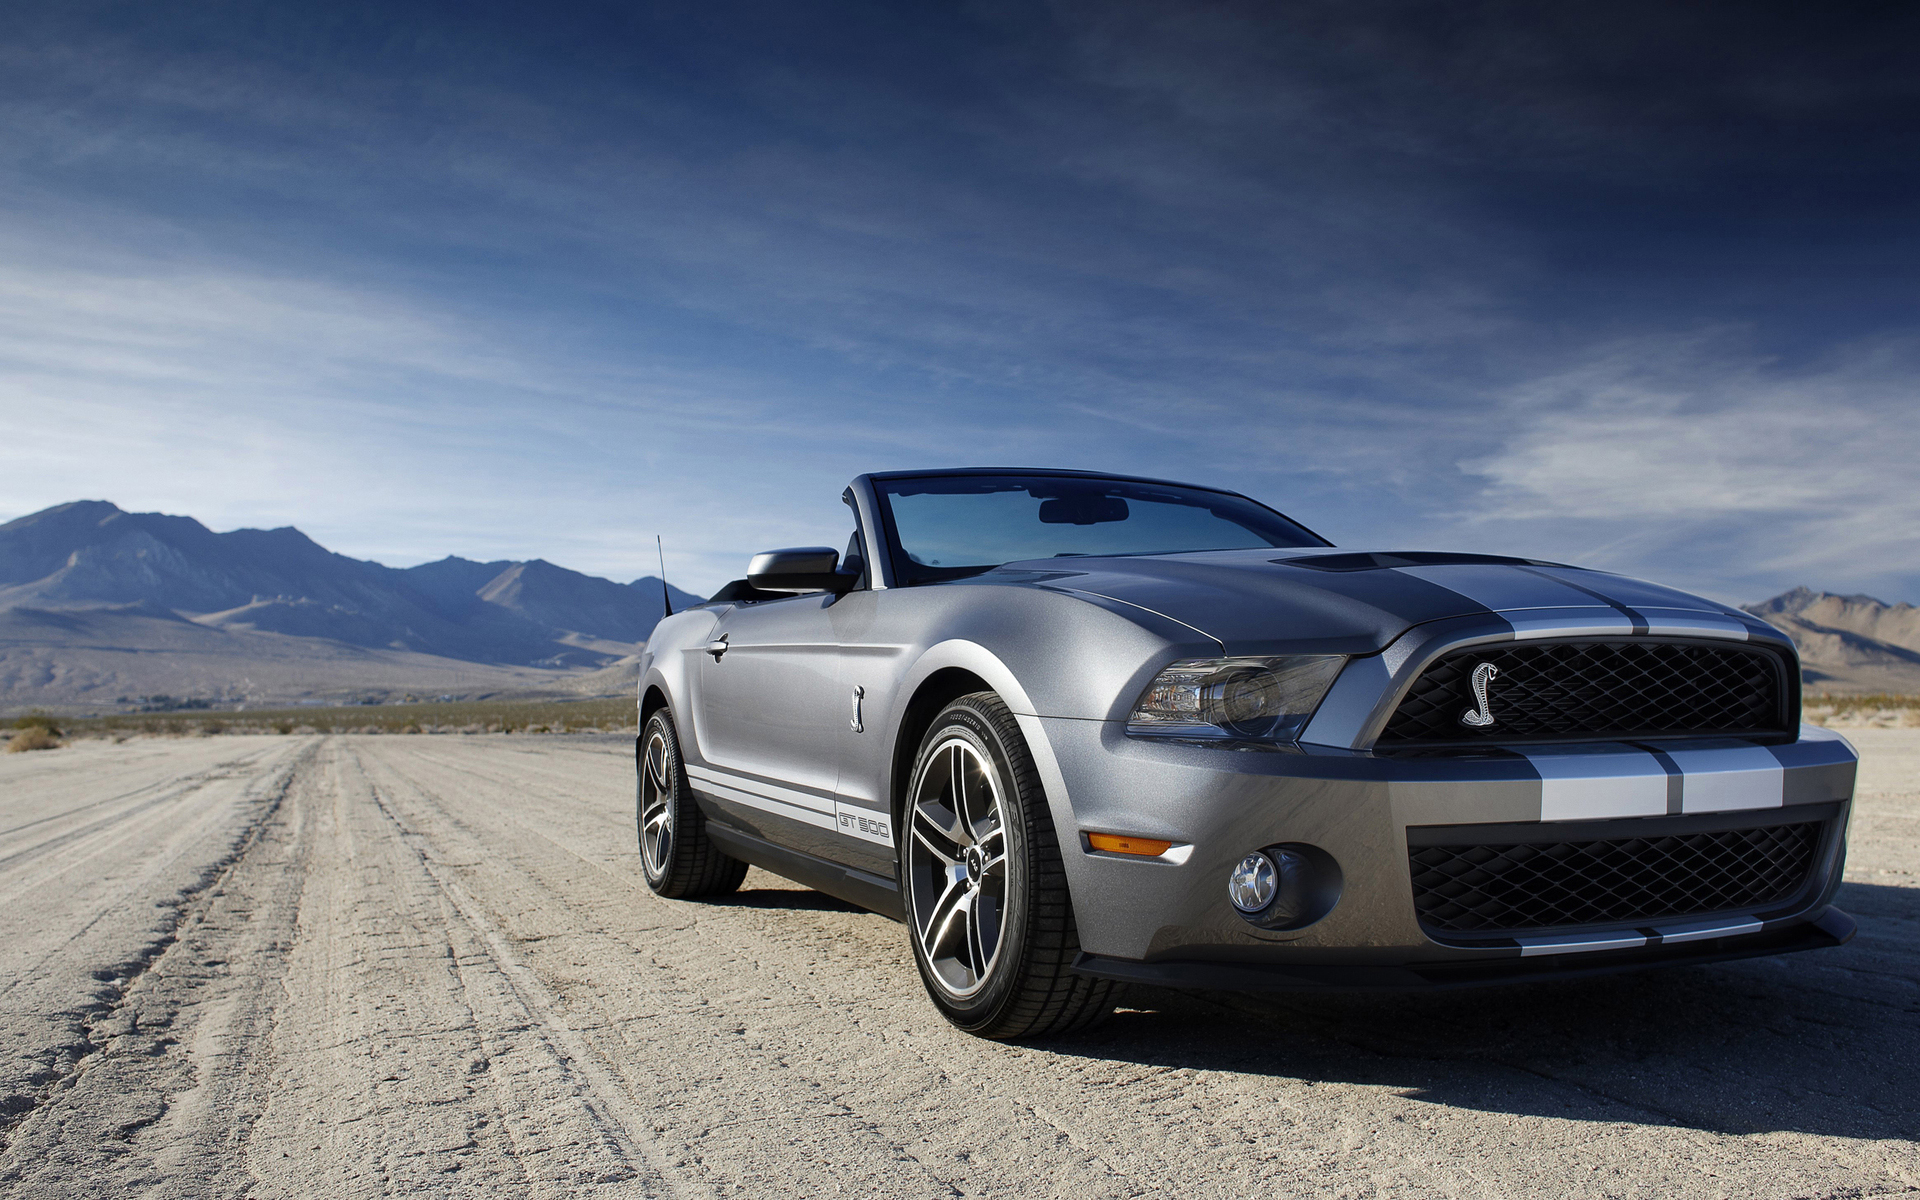 Ford Mustang Desktop Wallpapers FREE on Latorocom 1920x1200